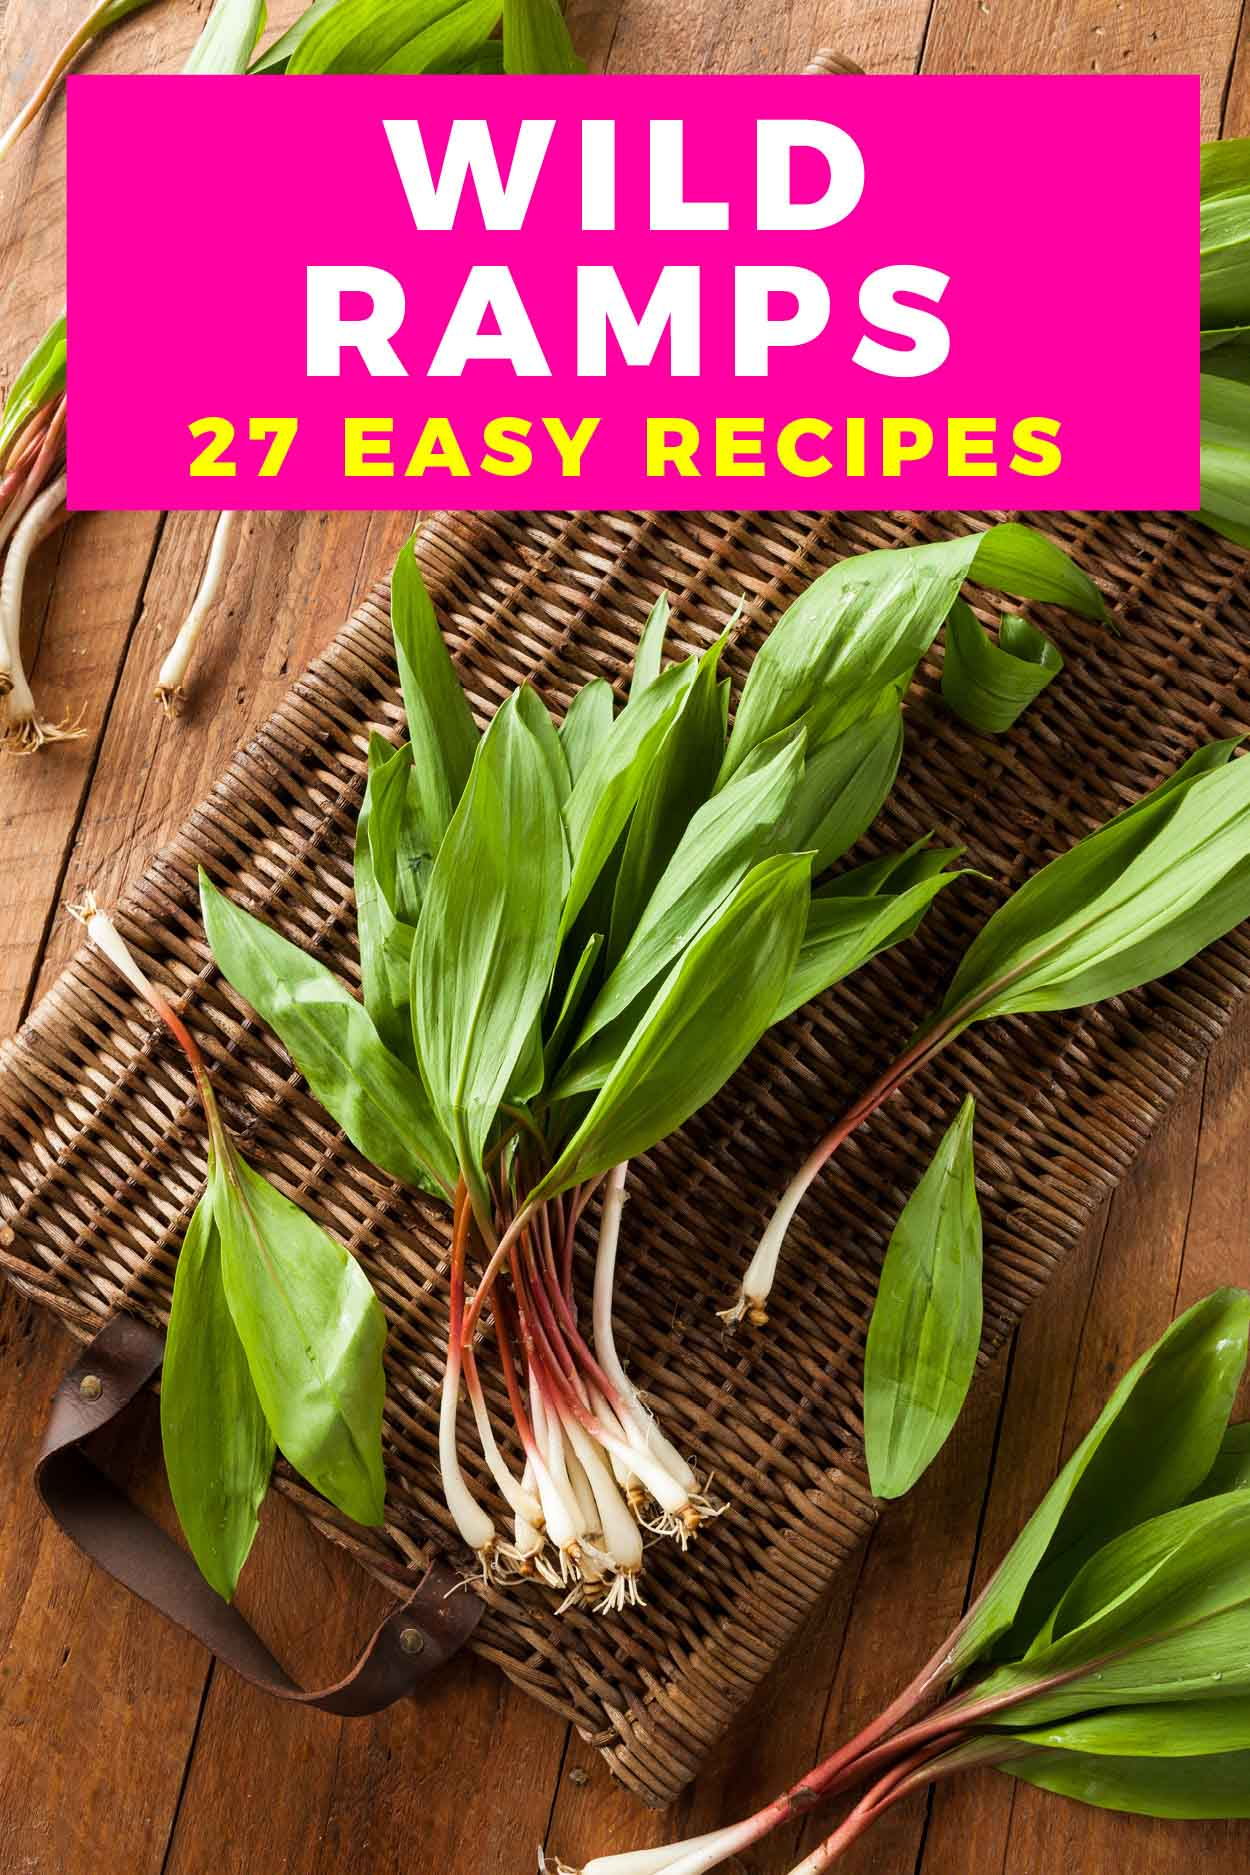 Wild ramps on a table